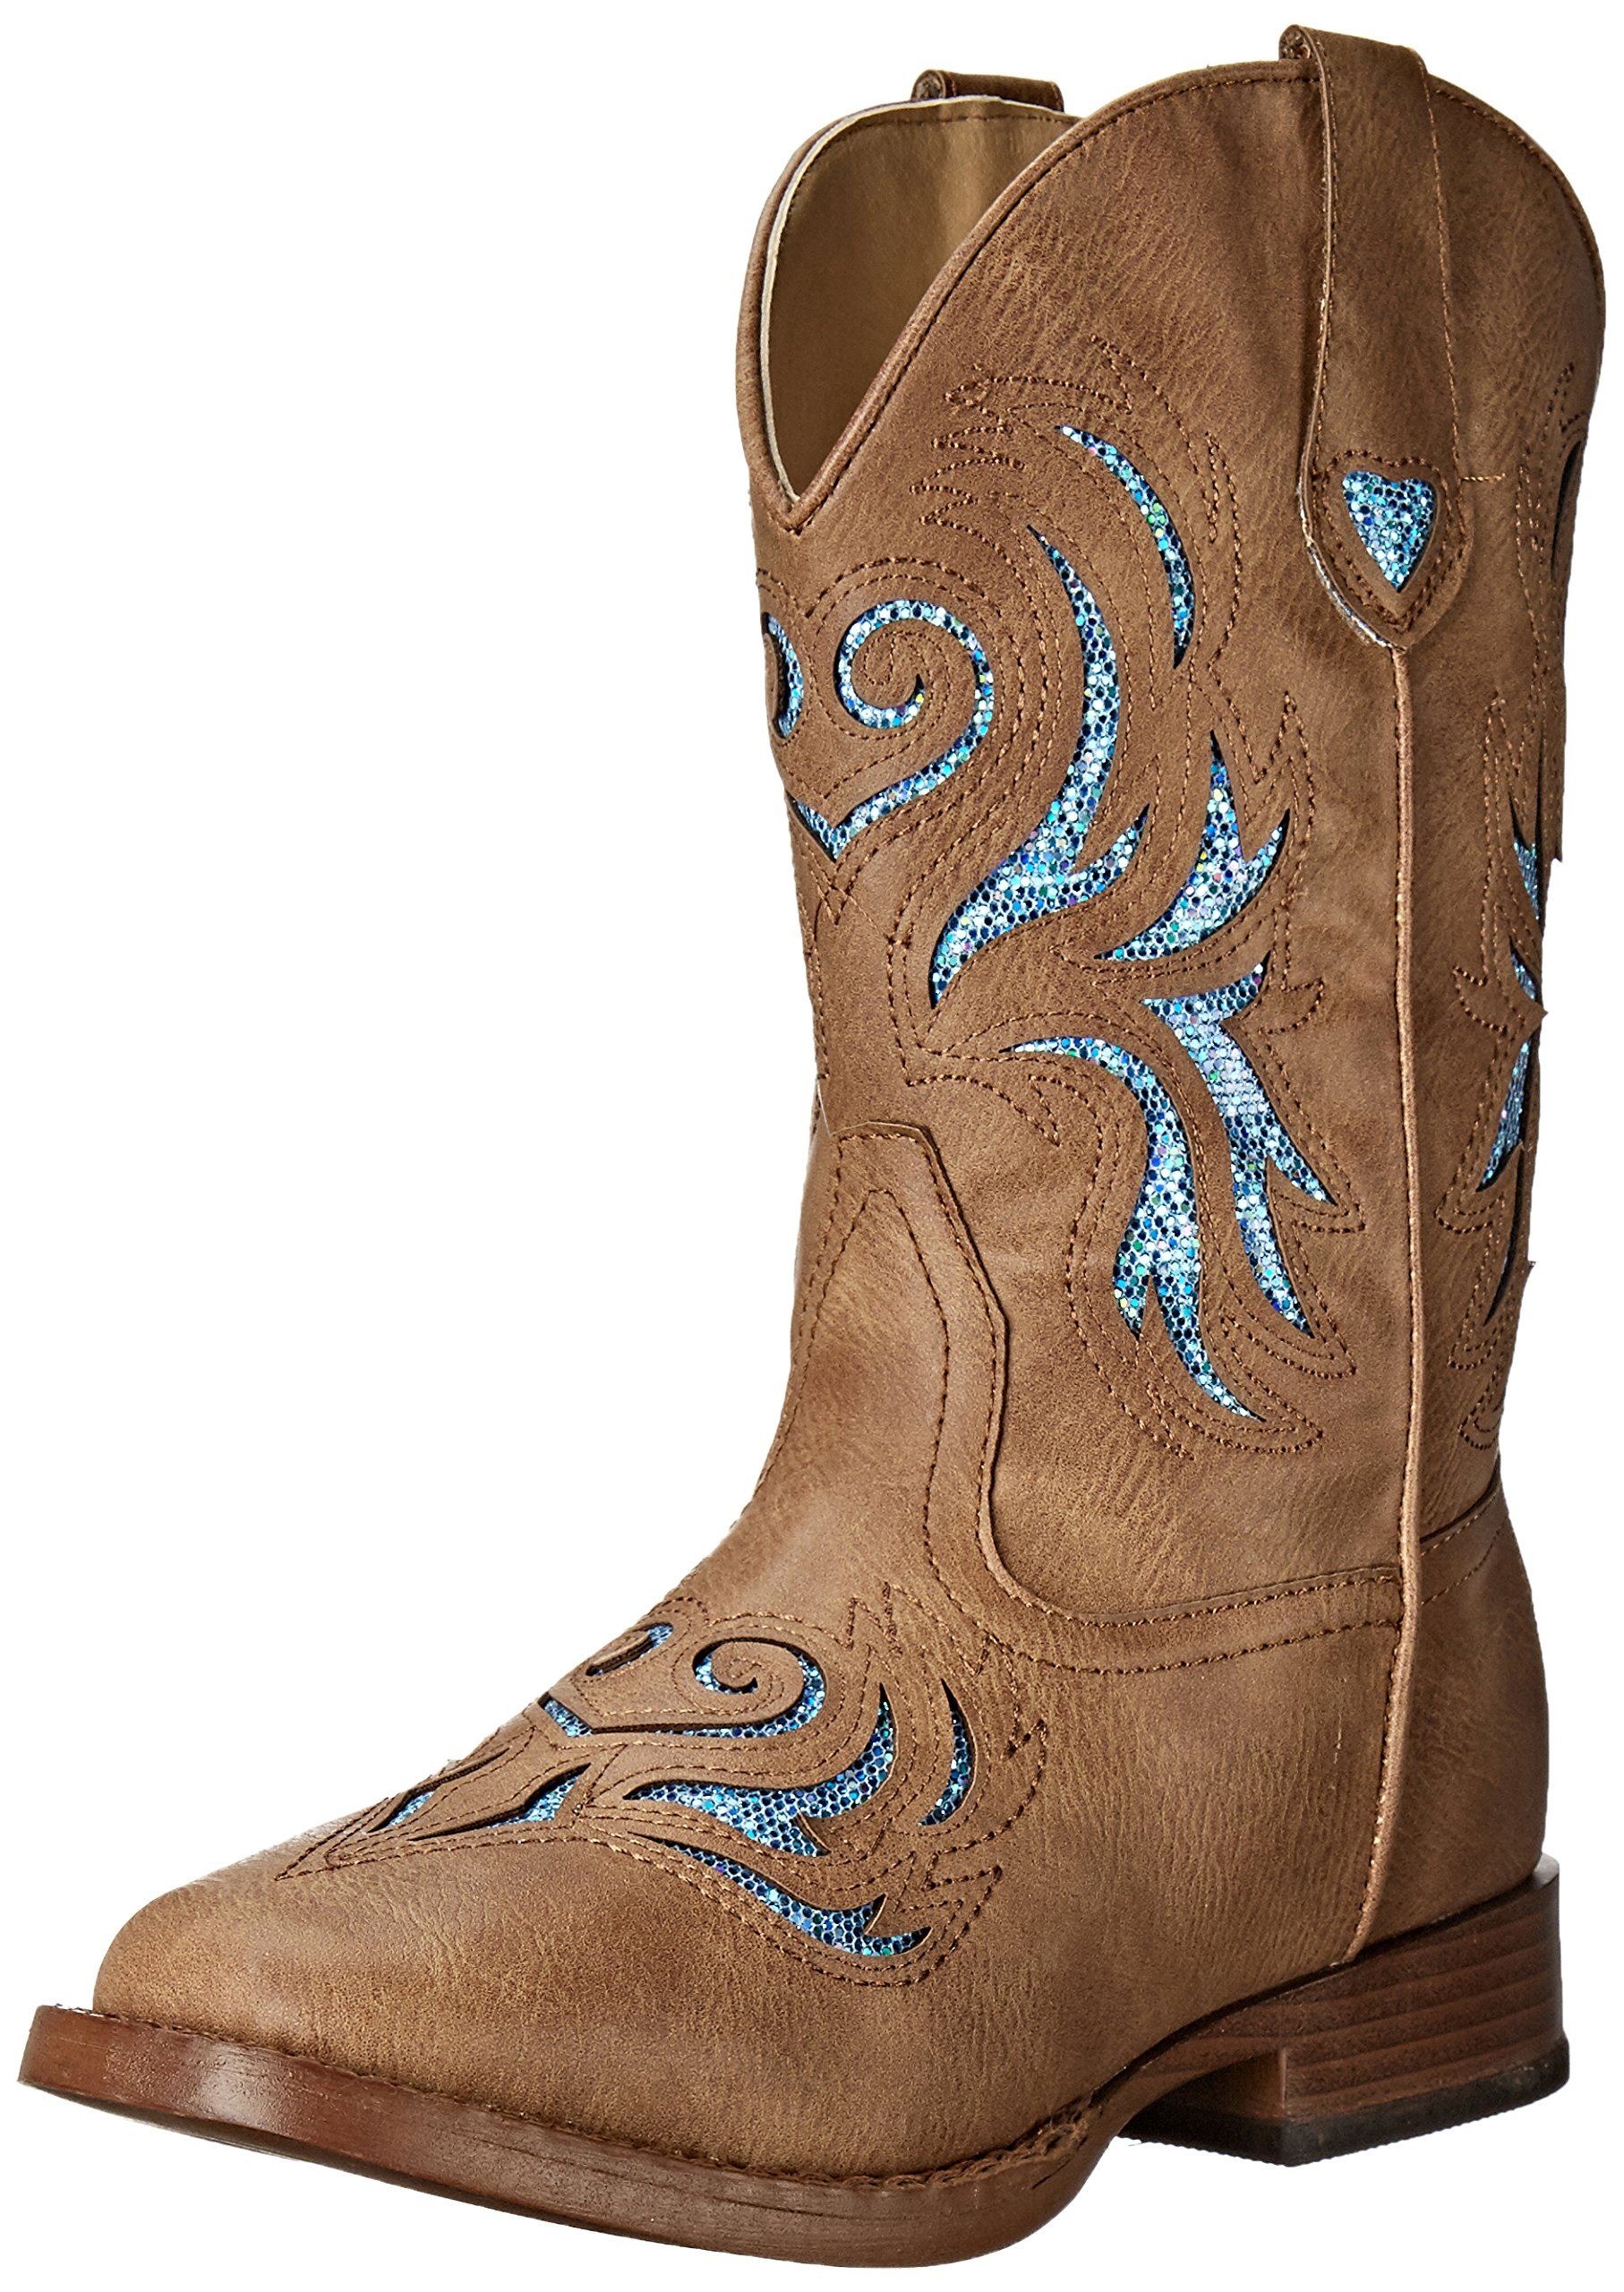 ROPER Girls' Glitter Breeze Western Boot, Tan, 3 M US Little Kid by ROPER